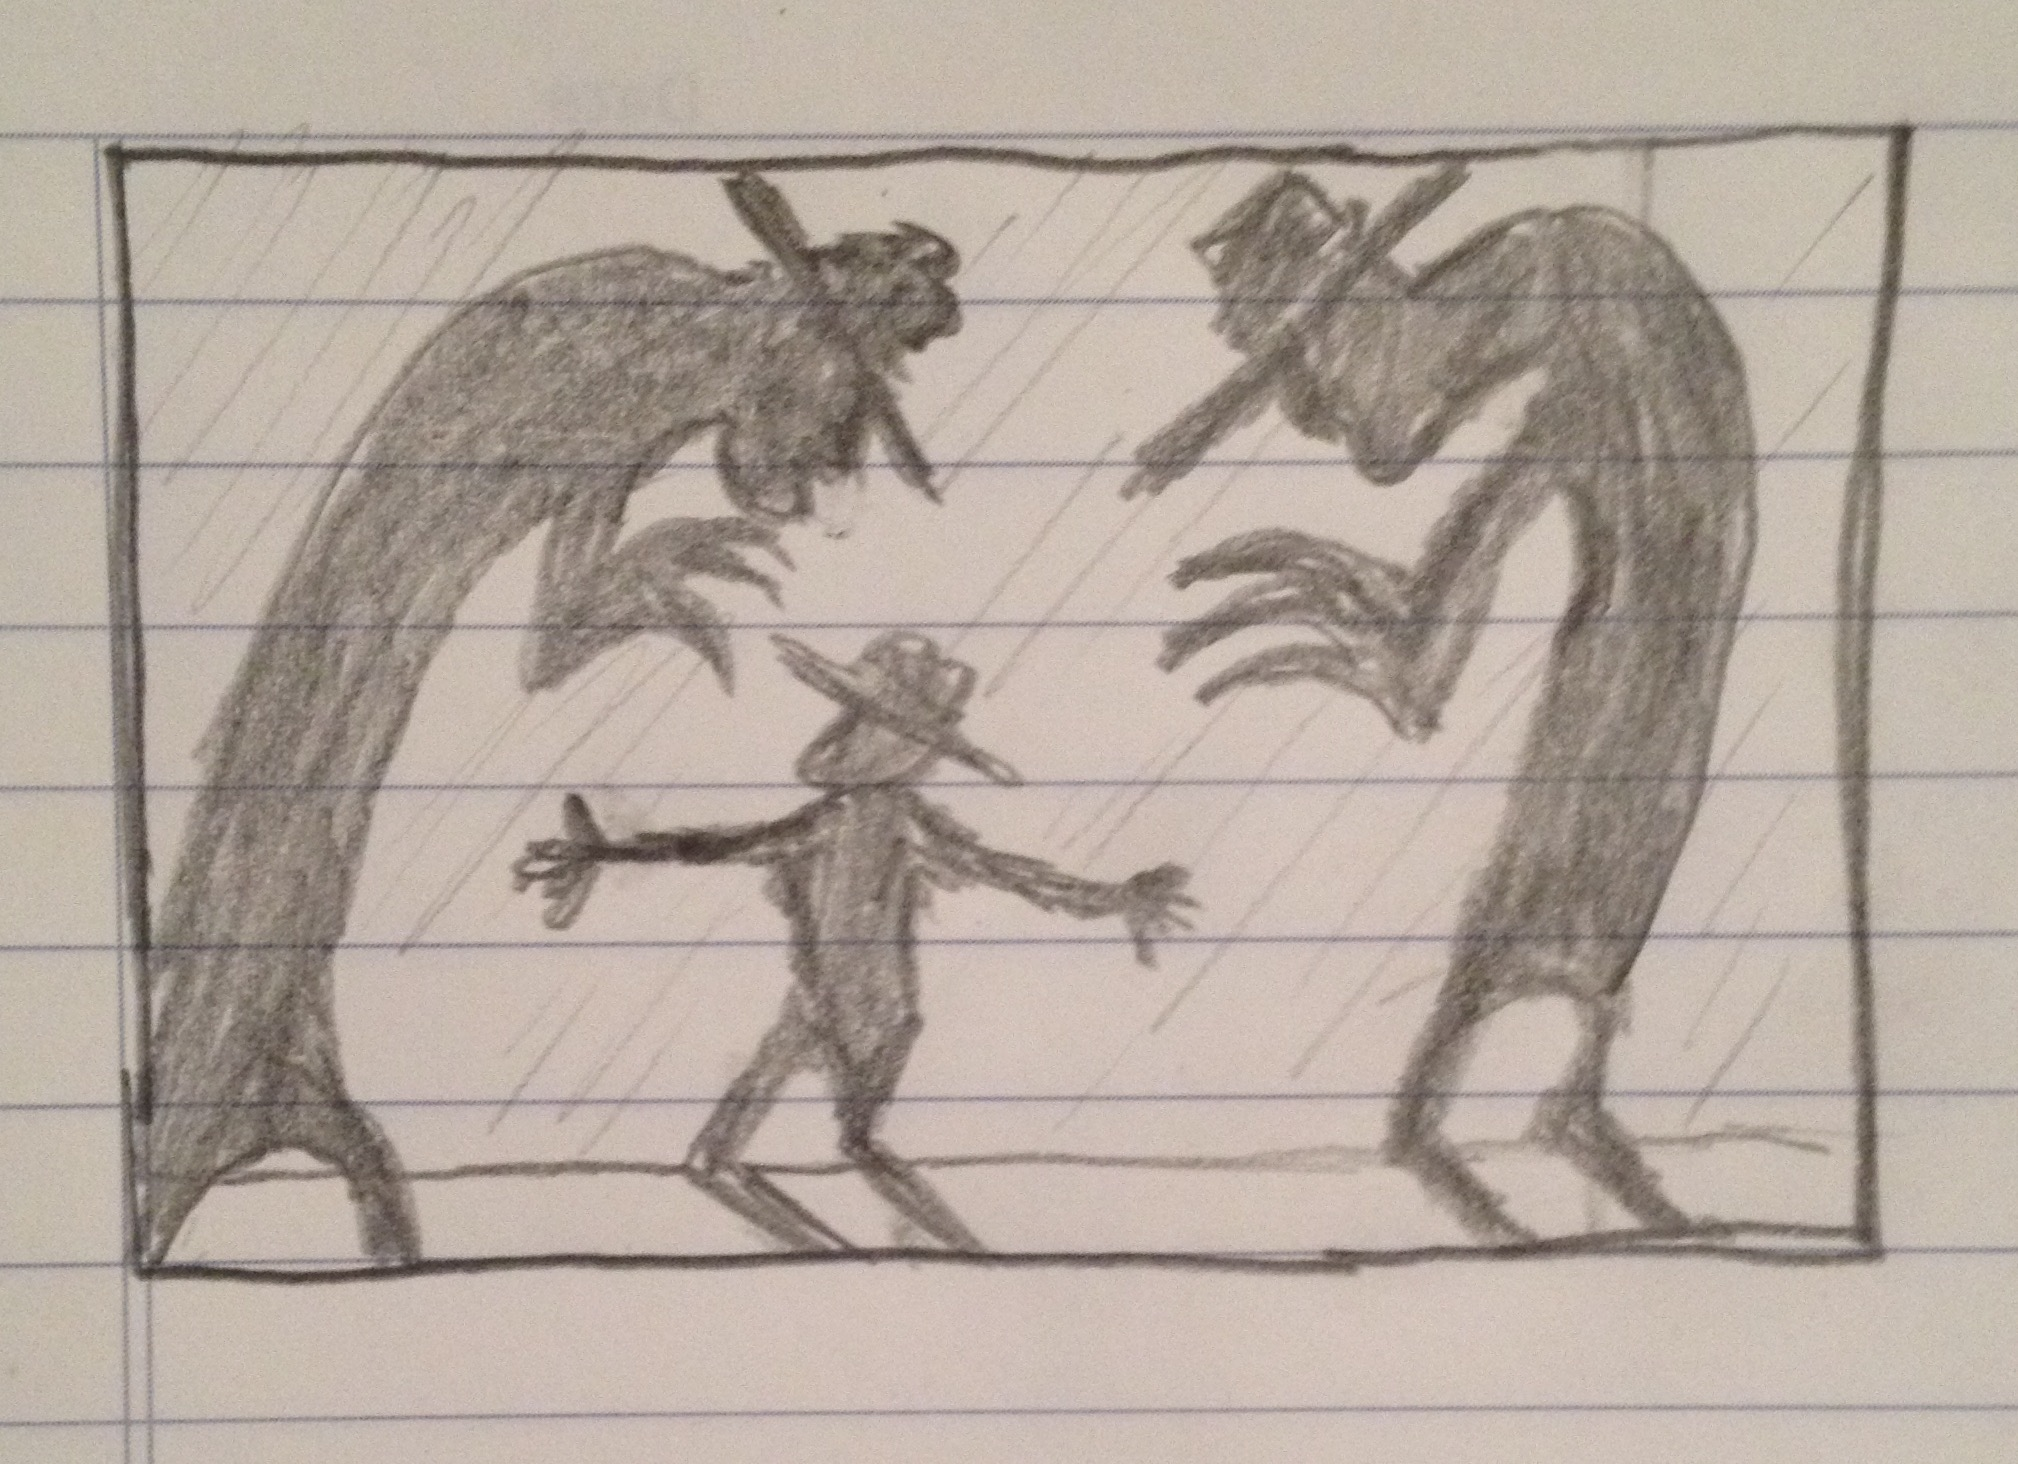 Early sketch from storyboard of Visions short.